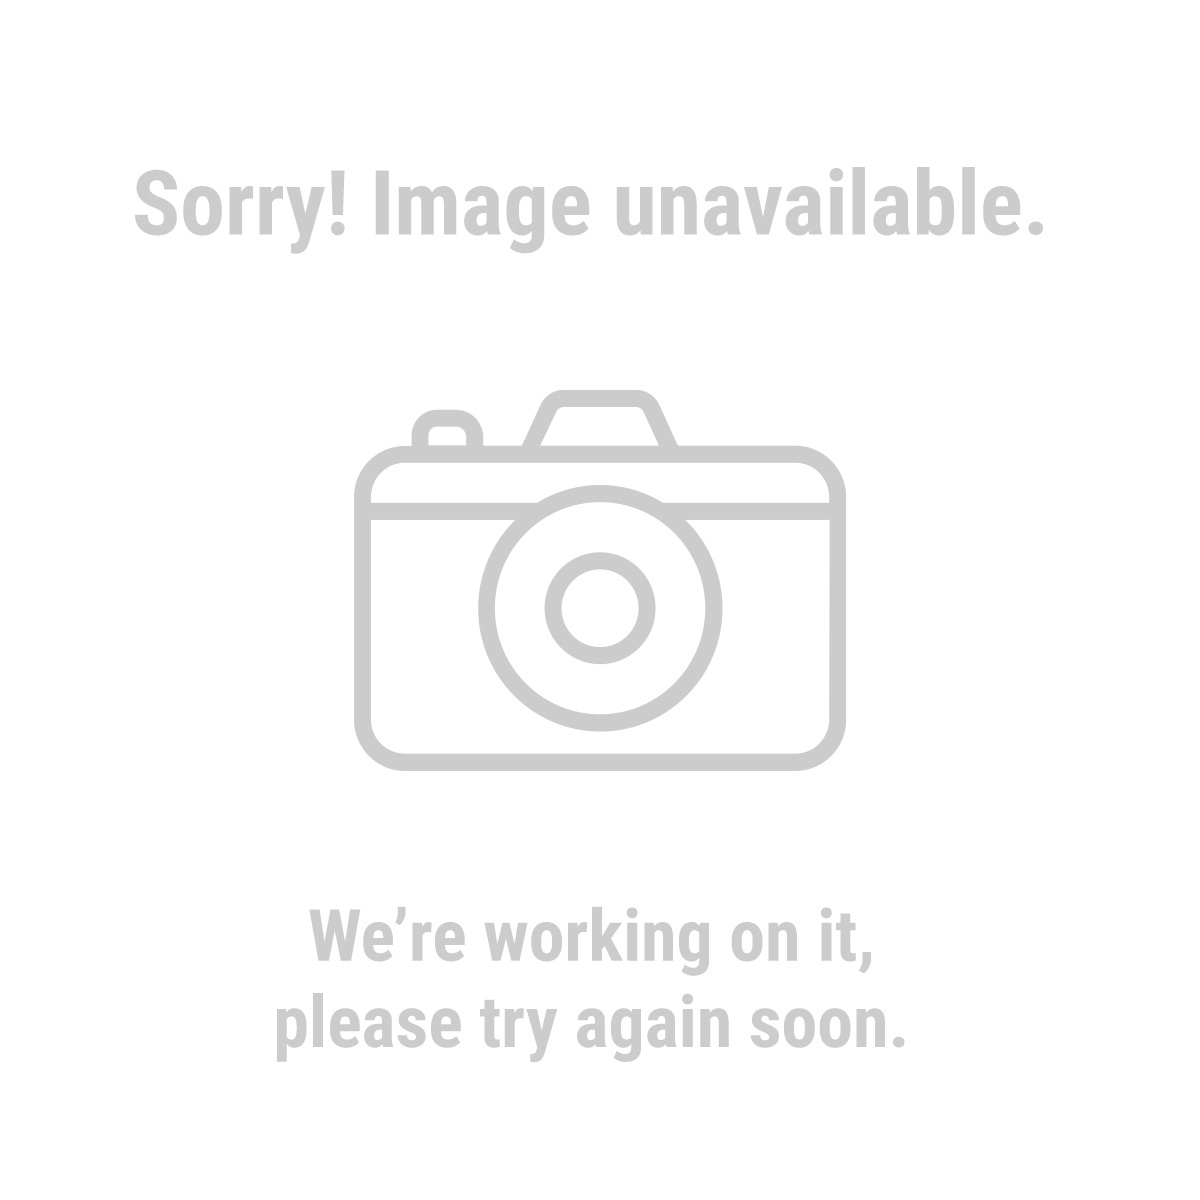 Central Forge 4067 3 Way Edging Clamp